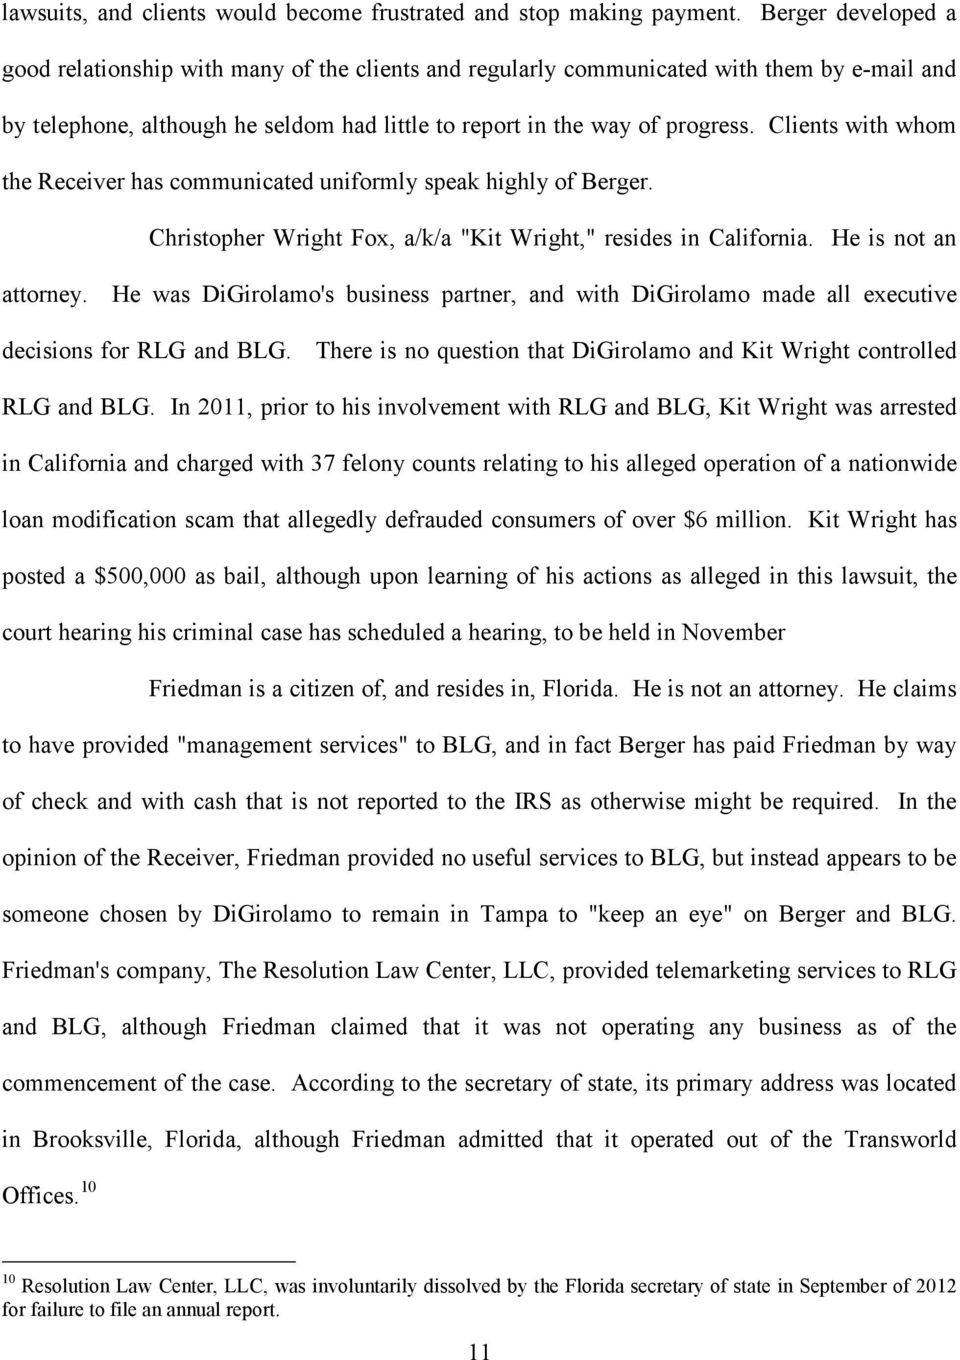 "Clients with whom the Receiver has communicated uniformly speak highly of Berger. Christopher Wright Fox, a/k/a ""Kit Wright,"" resides in California. He is not an attorney."